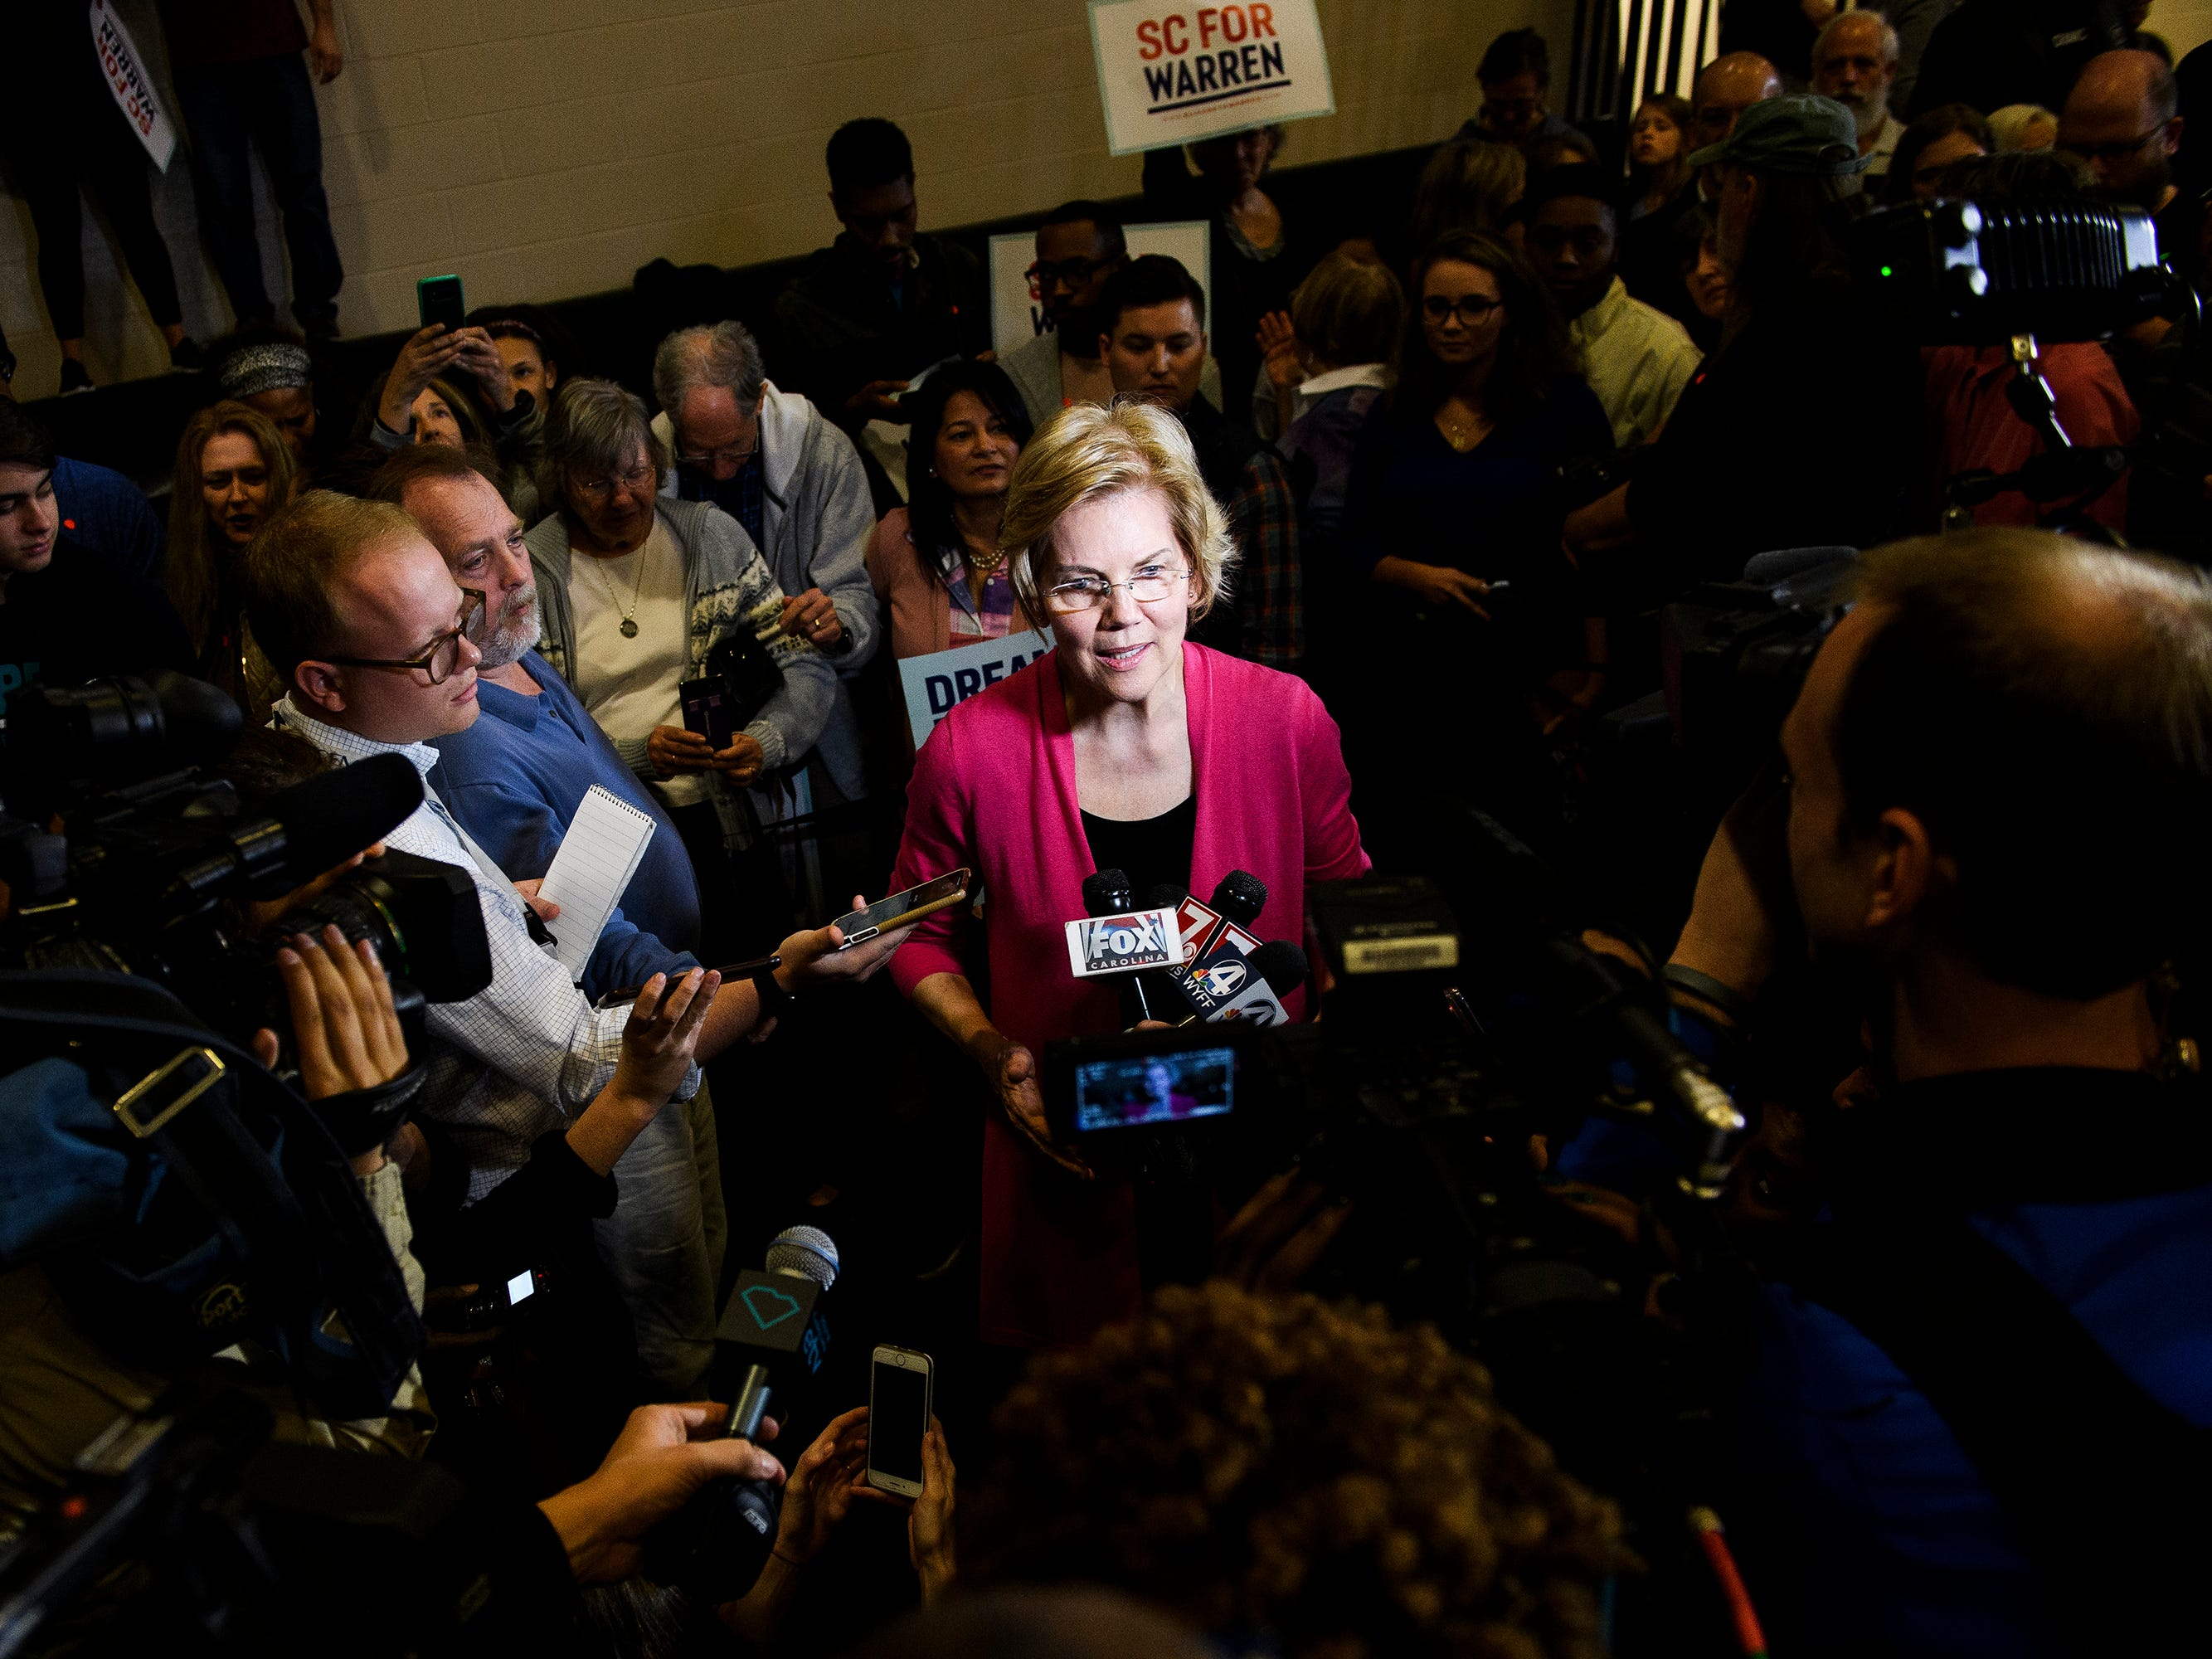 U.S. Sen. Elizabeth Warren speaks to members of the press during a campaign event at the West End Community Development Center in Greenville Saturday, Feb. 16, 2019.